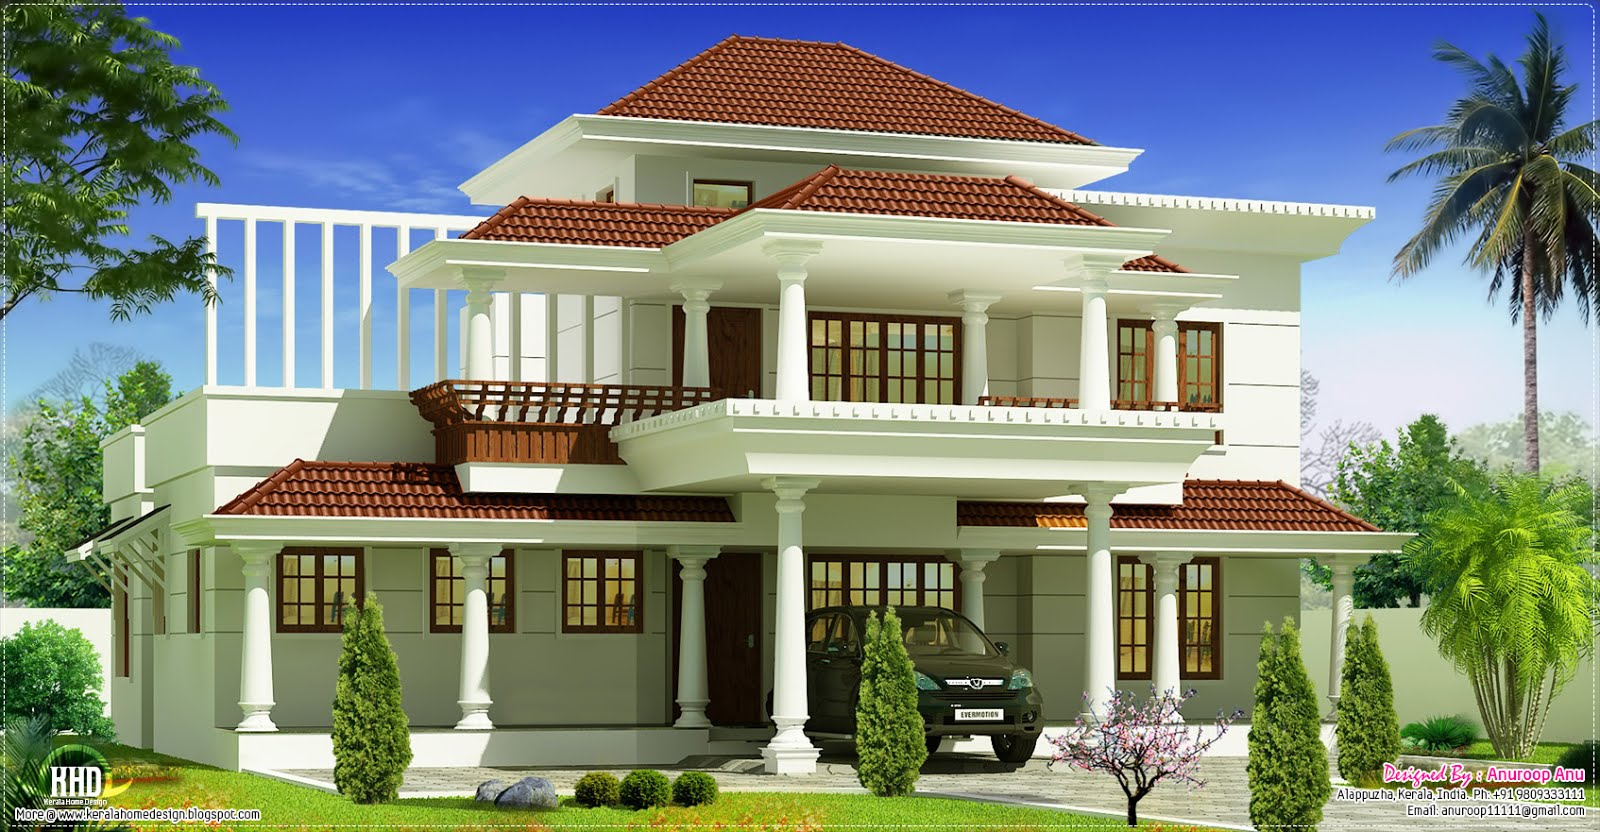 Kerala villa designs home design for Kerala house interior painting photos